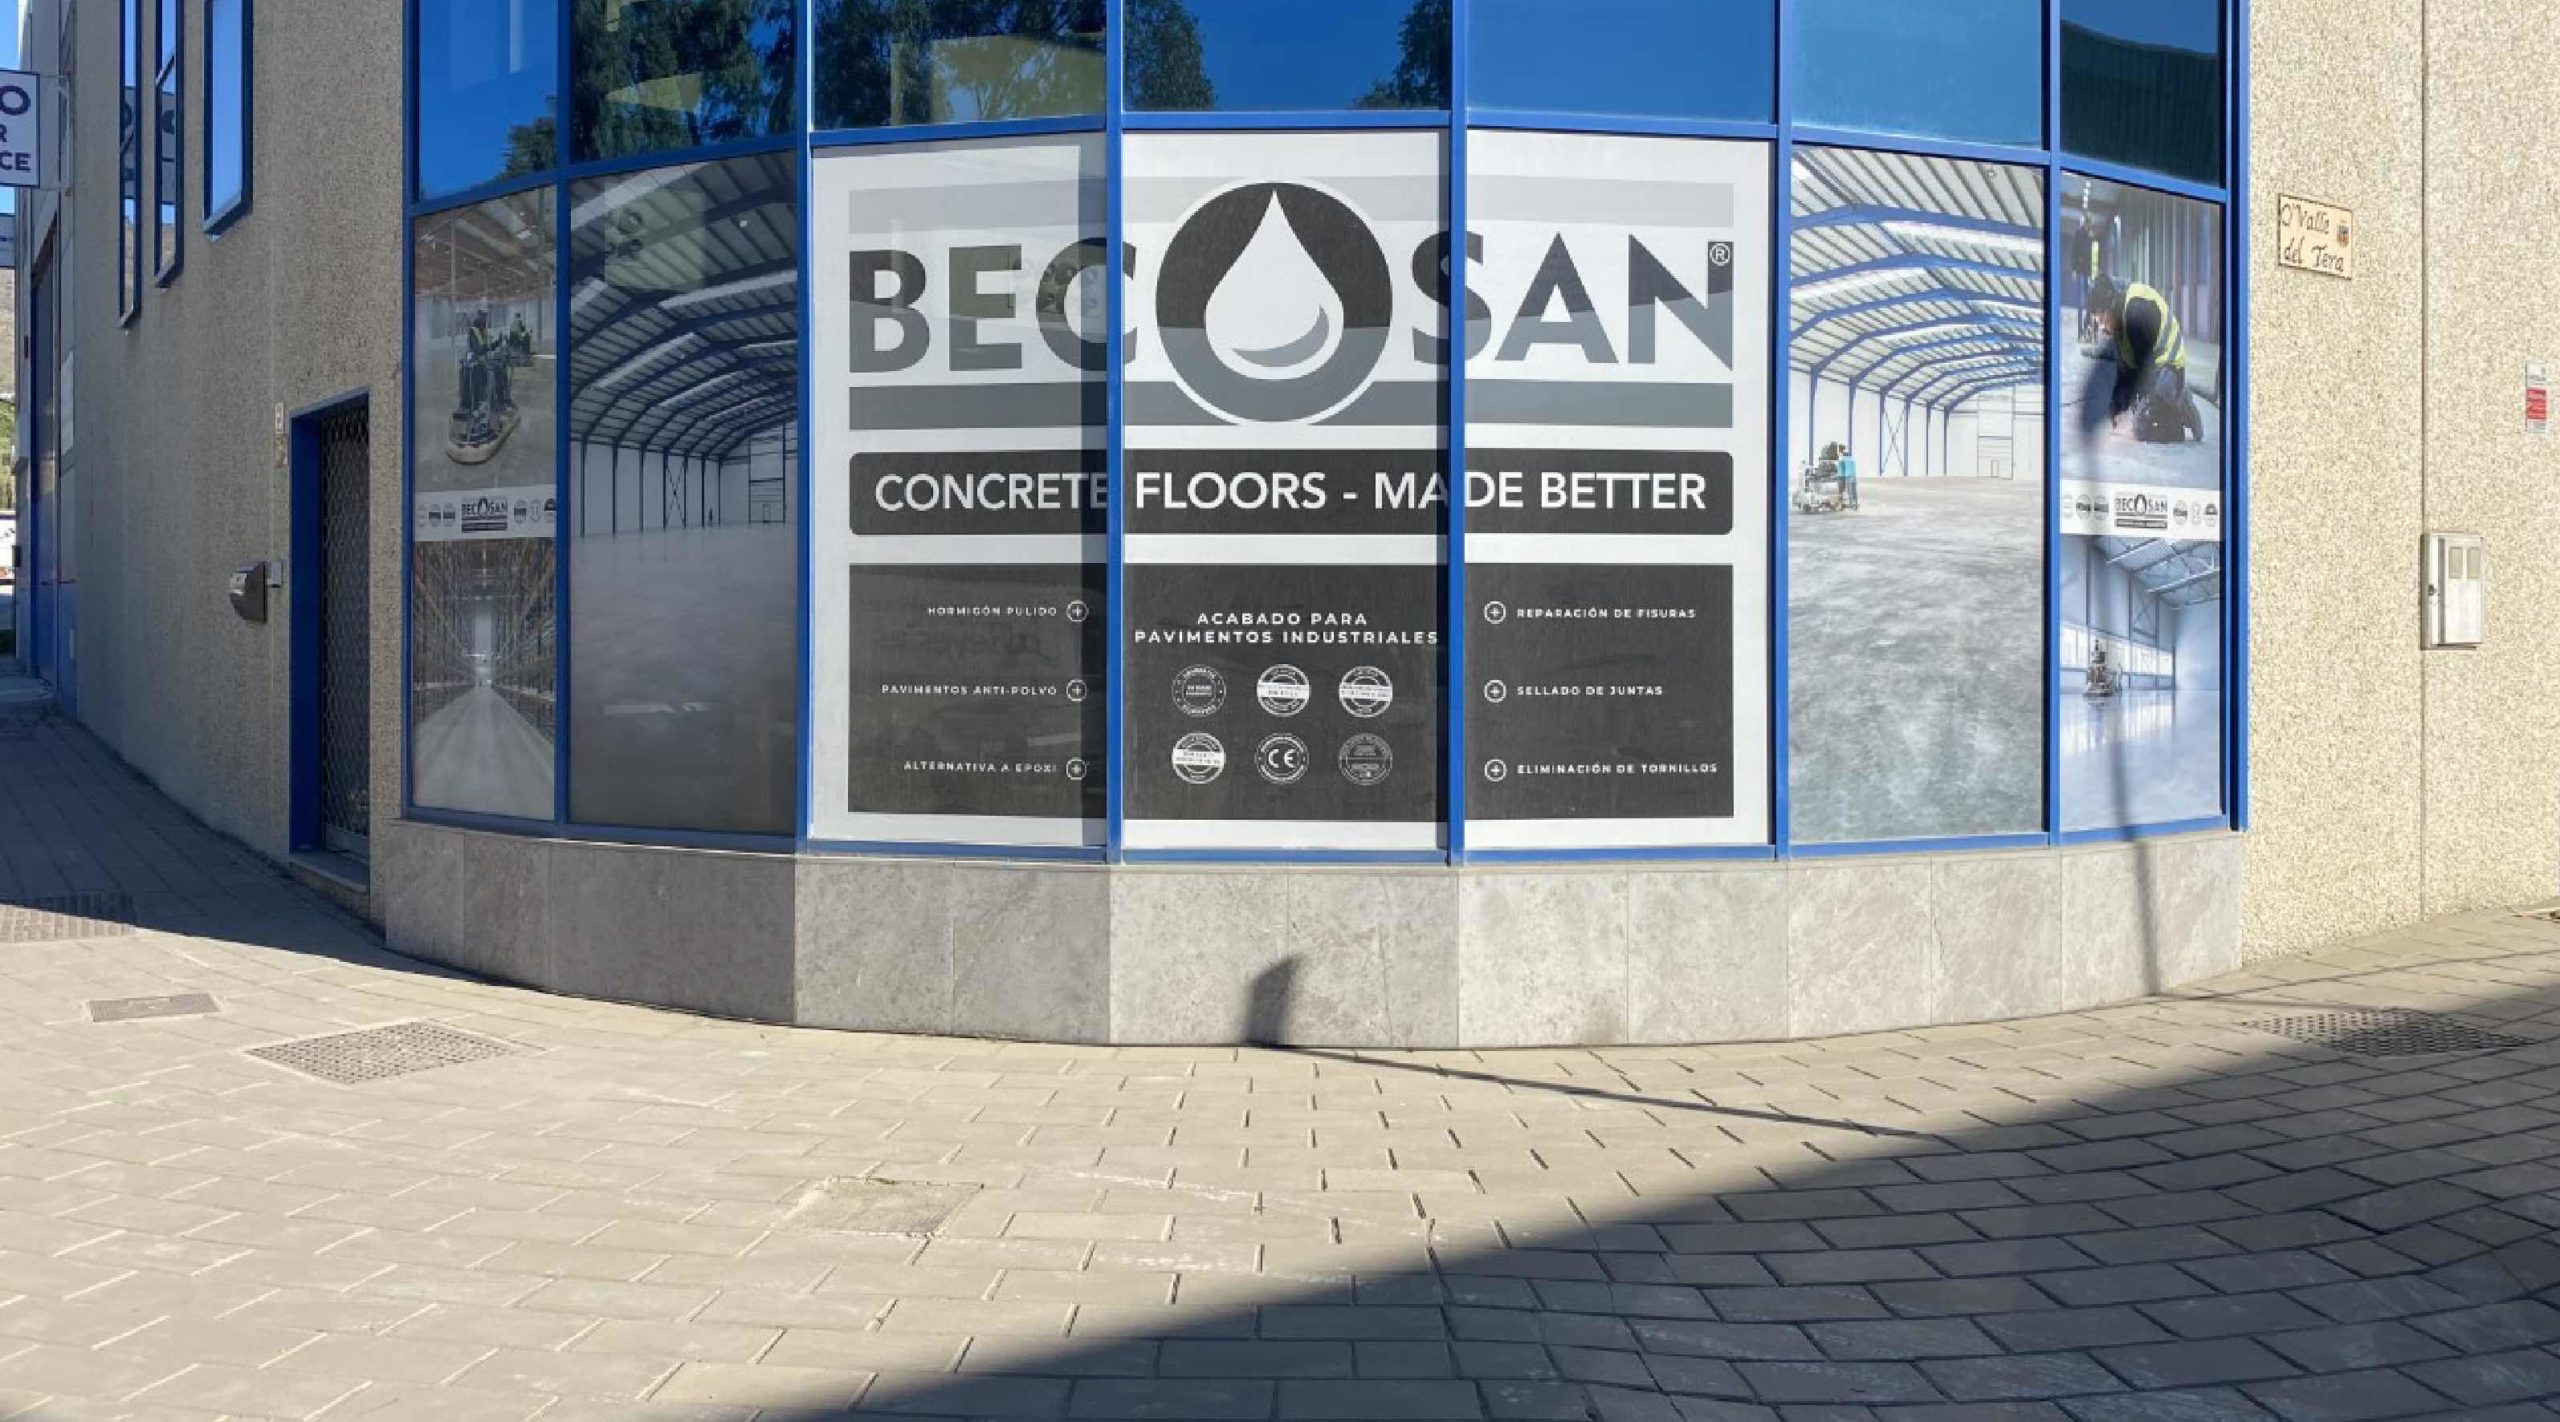 Becosan's New Headquarters In Spain